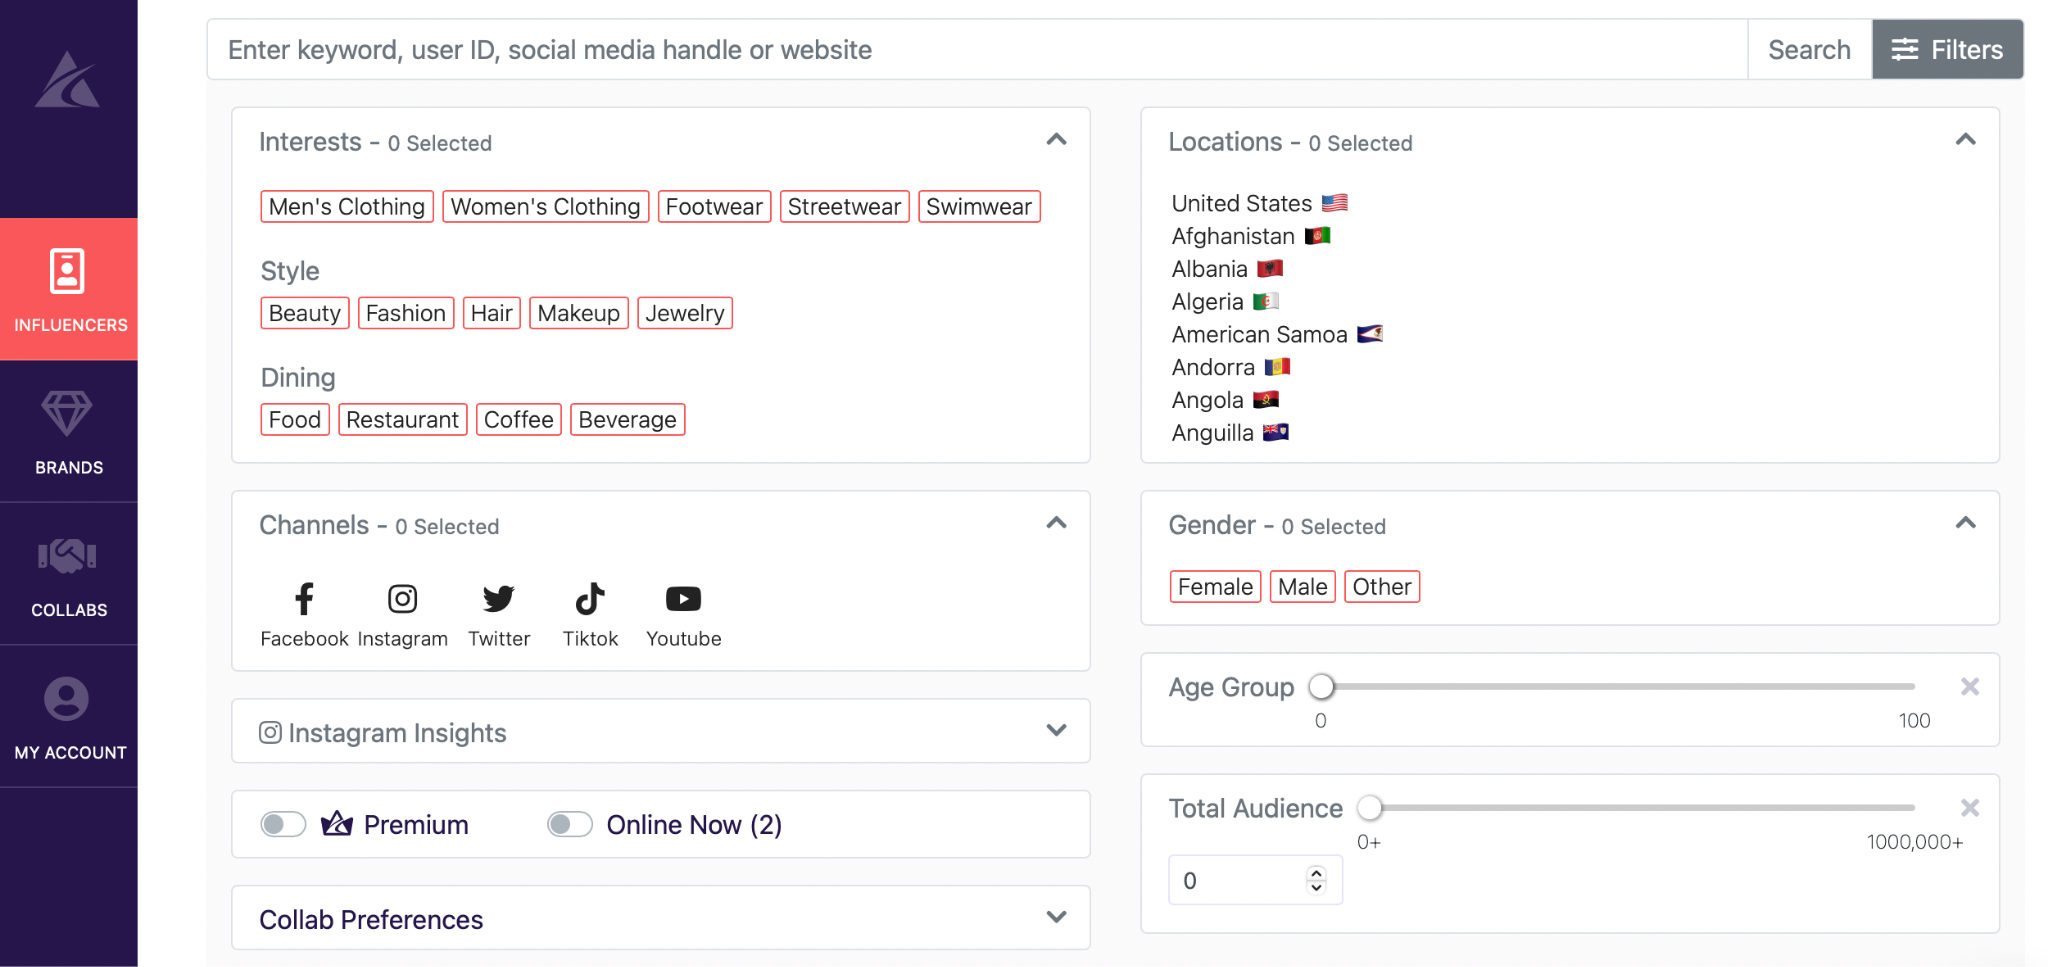 Afluencer app filter options for brands searching for influencers